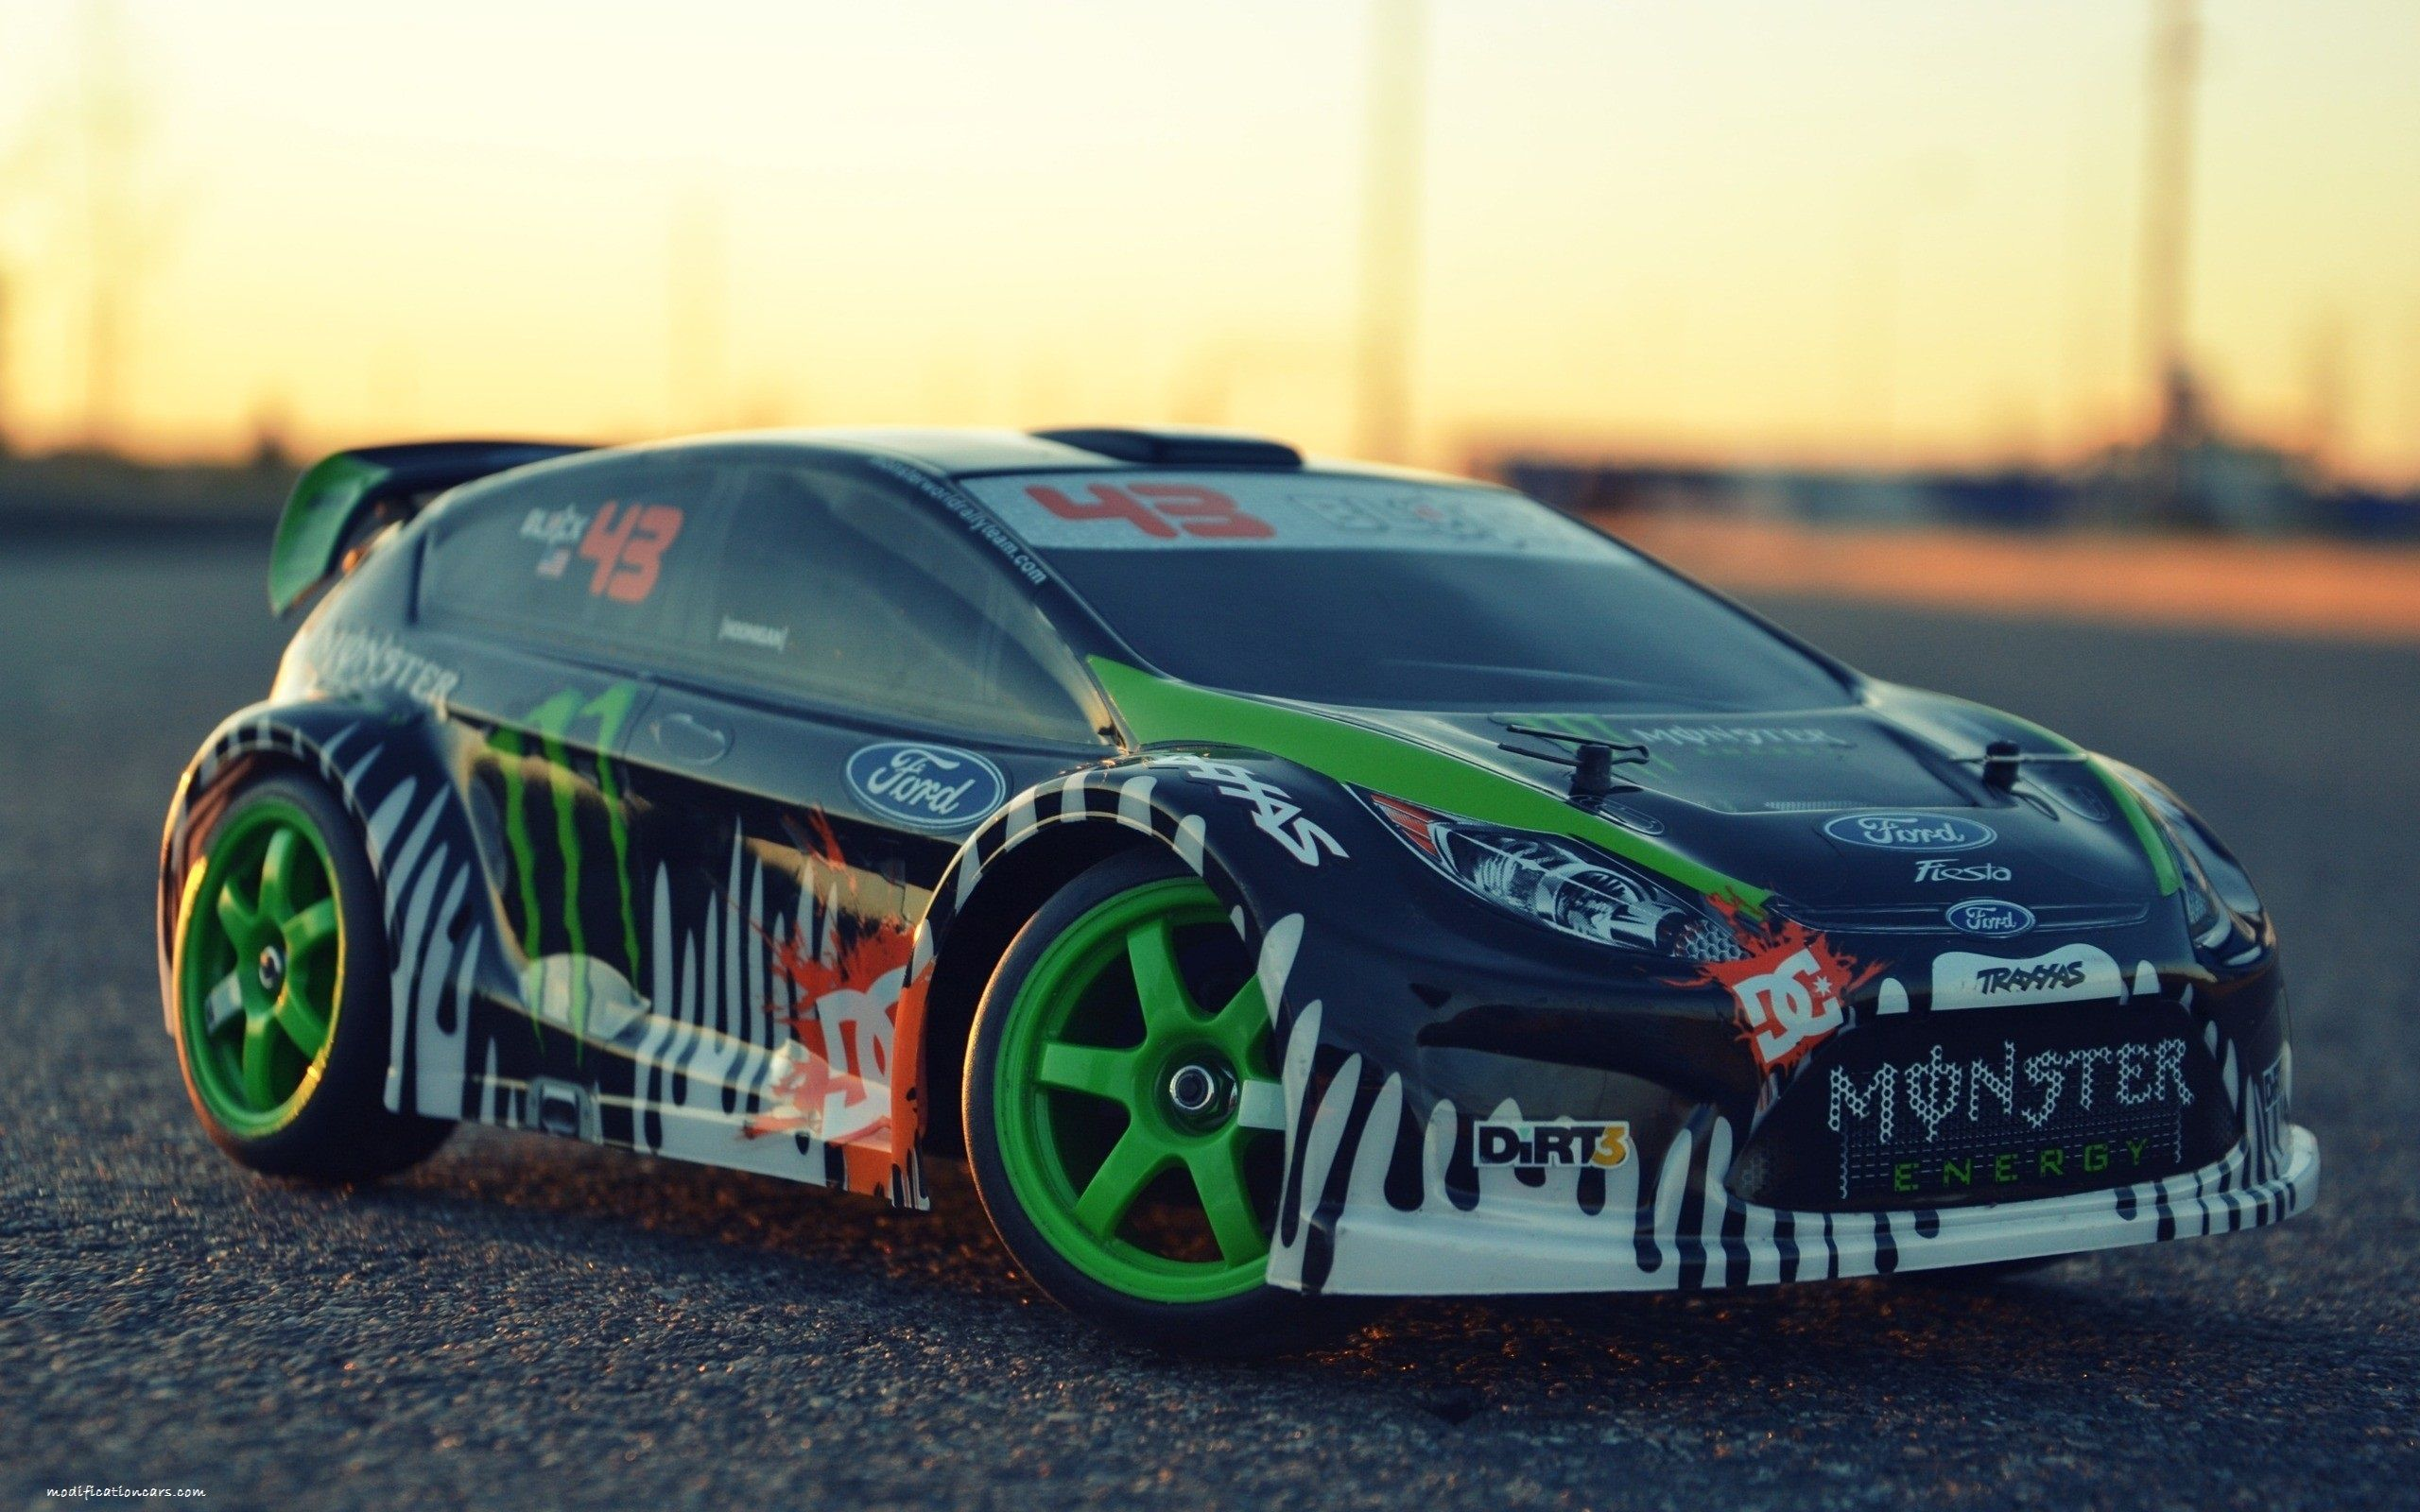 Modified Ford Fiesta Shoes Toy Cars Hd Wallpaper Remote Control